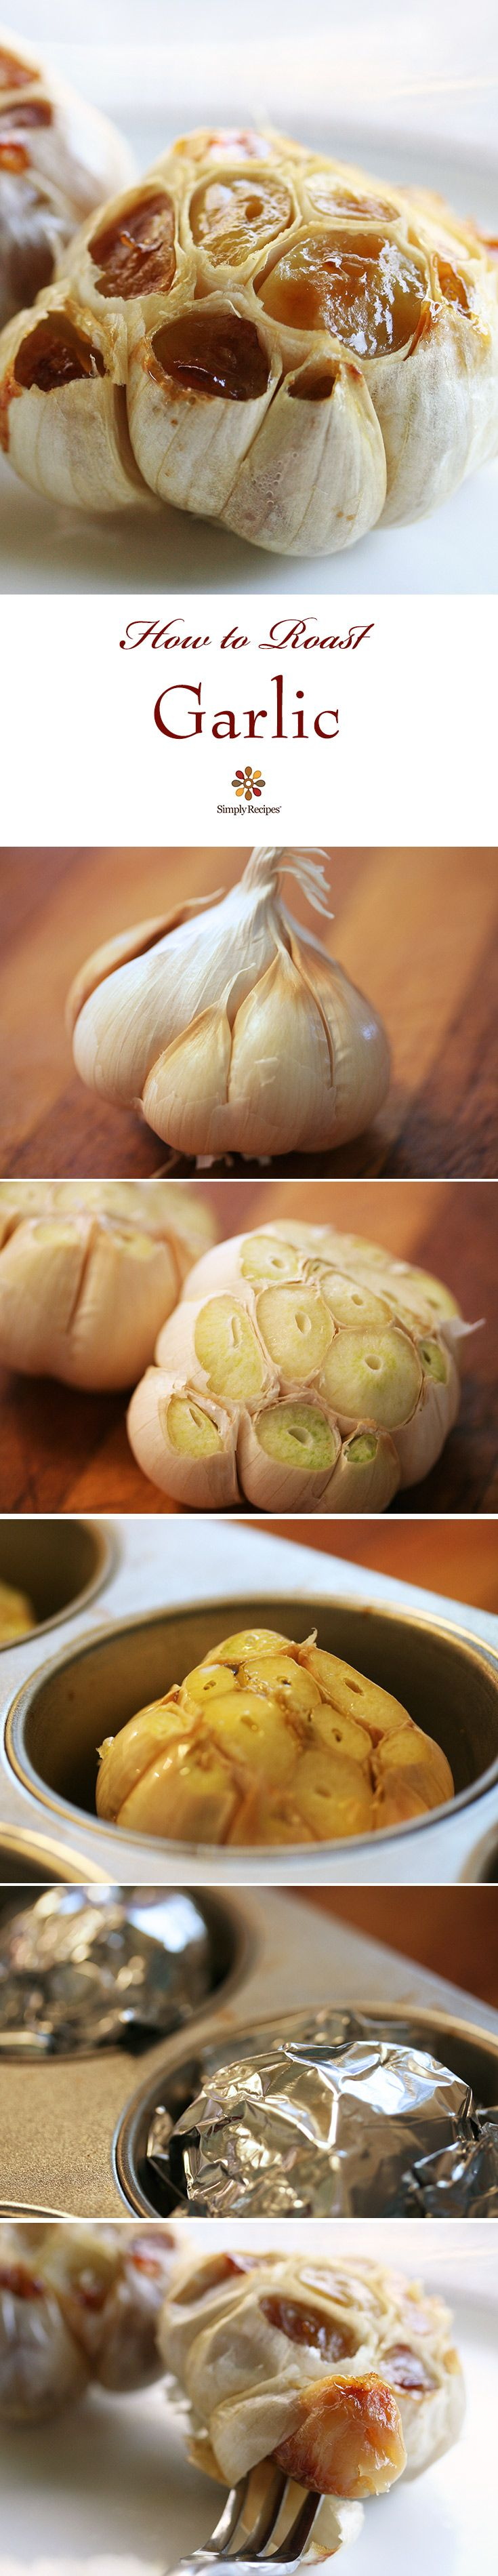 Roasted Garlic ~ How to roast whole heads of garlic in the oven so you can eat warm, toasty cloves right out of the garlic head. ~ #garlic #foodporn #dan330 http://livedan330.com/2015/01/26/roasted-garlic/